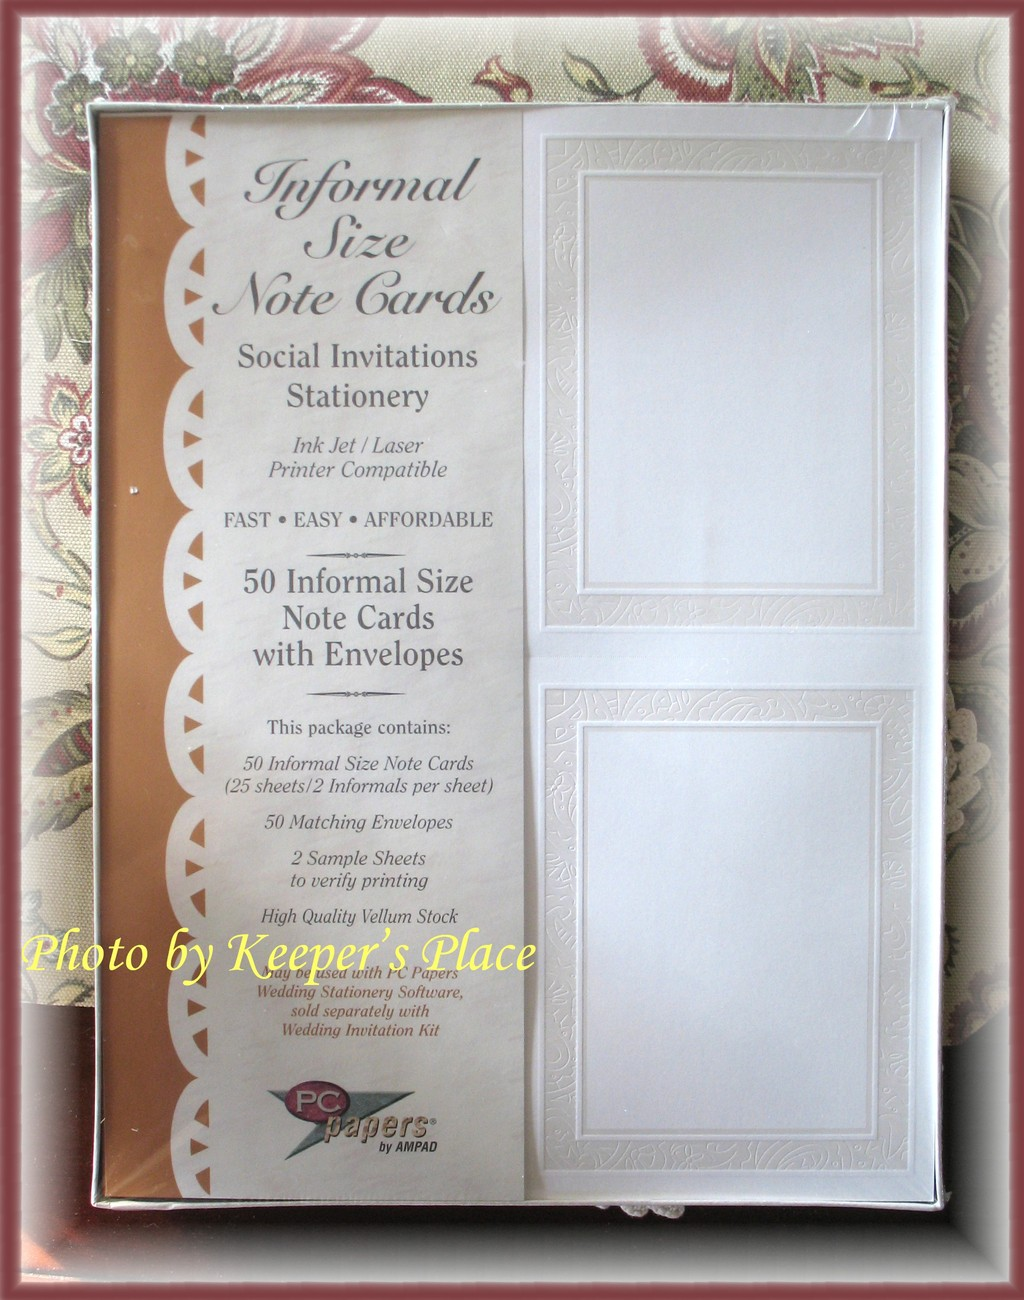 50 AMPAD Social Wedding Invitations Thank You Note Cards New Sealed In Plastic